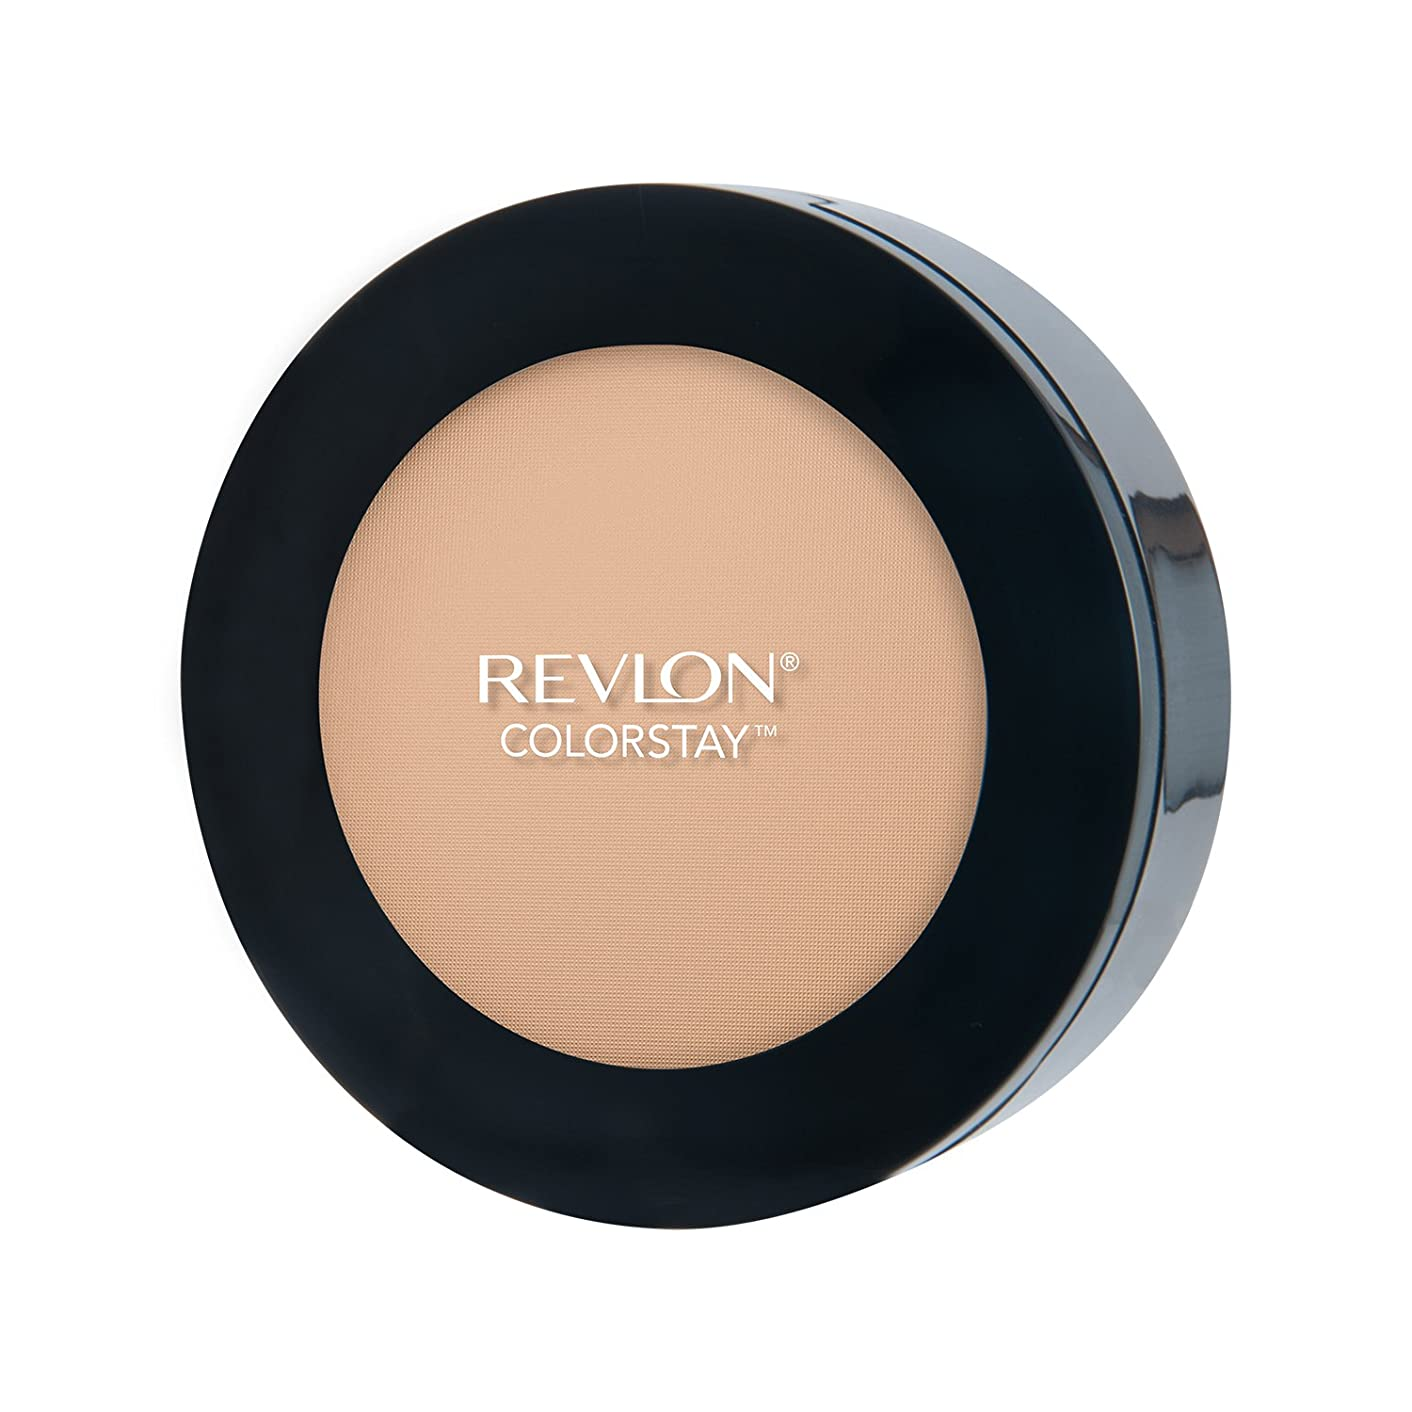 Revlon Colorstay Pressed Powder With Softflex, Light 820, 0.3 Ounce (Pack of 2)